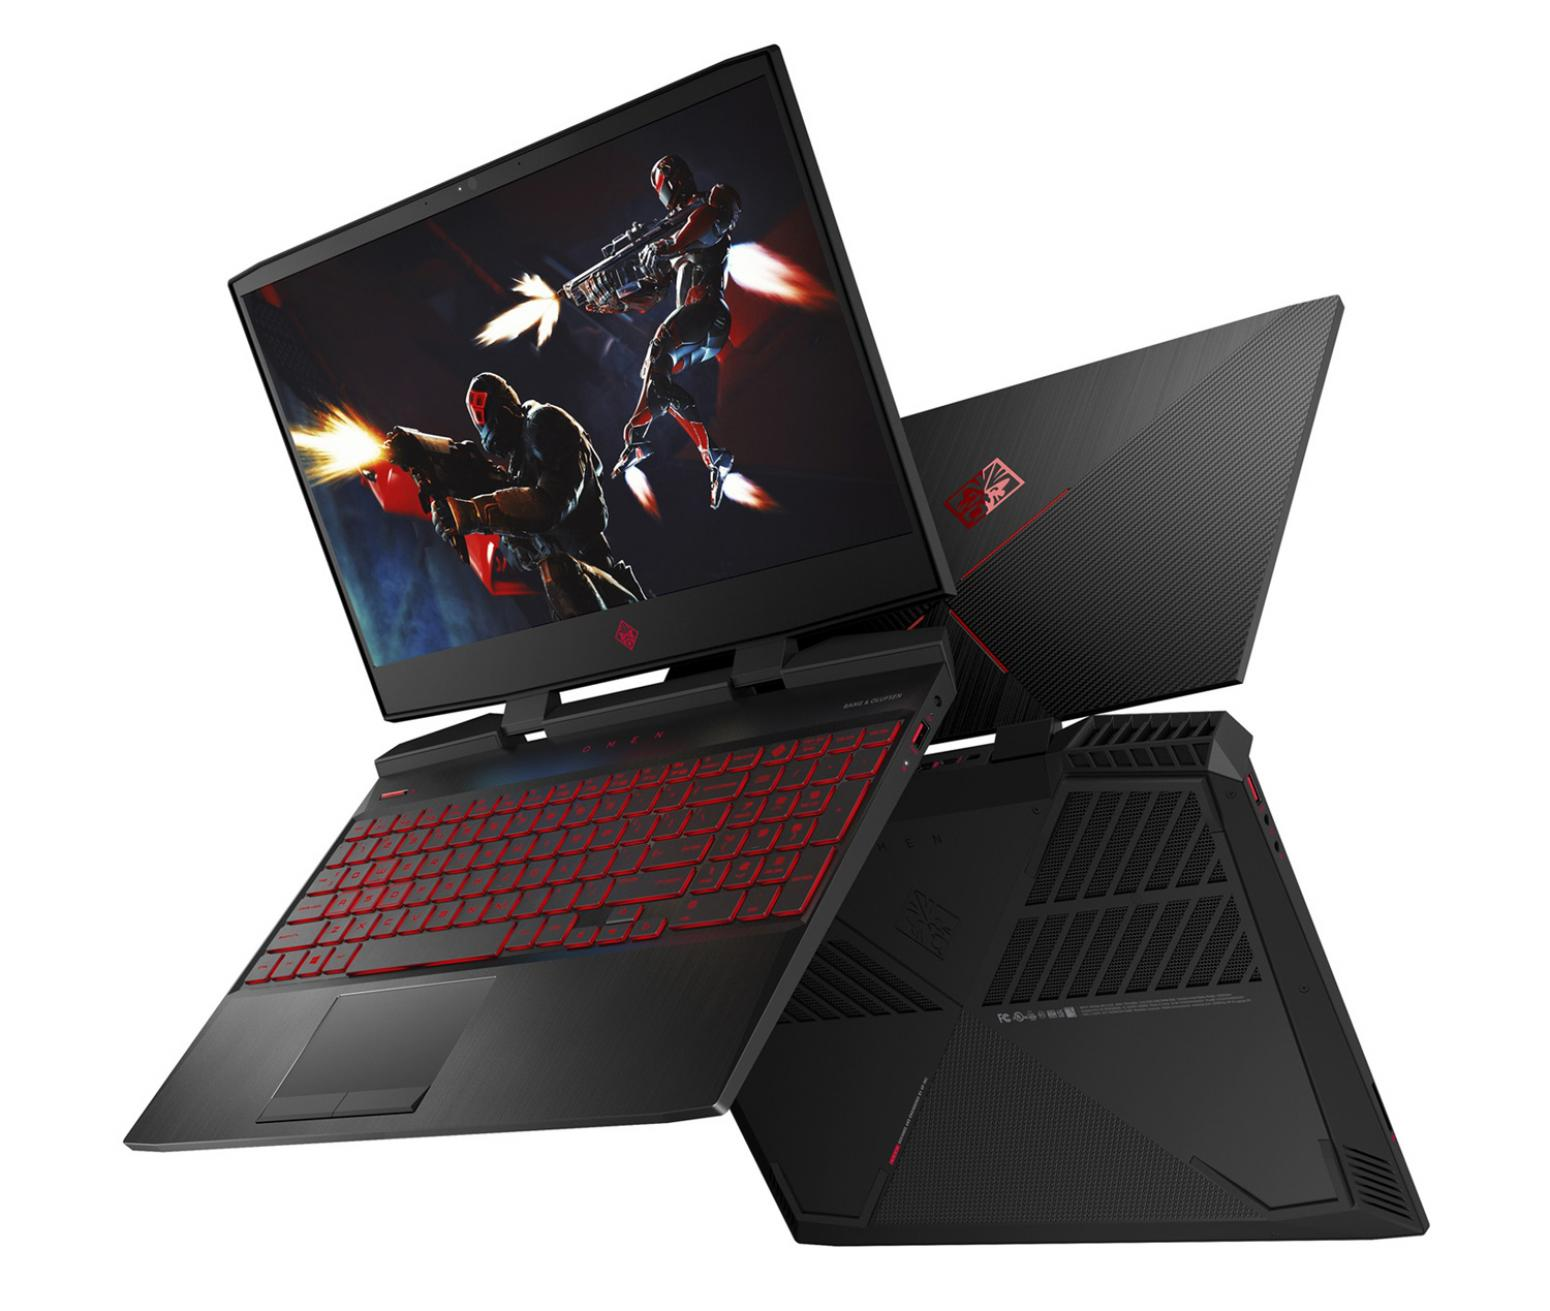 Ordinateur portable HP Omen 15-dc1005nf - RTX 2070 Turing, IPS 144Hz - photo 4